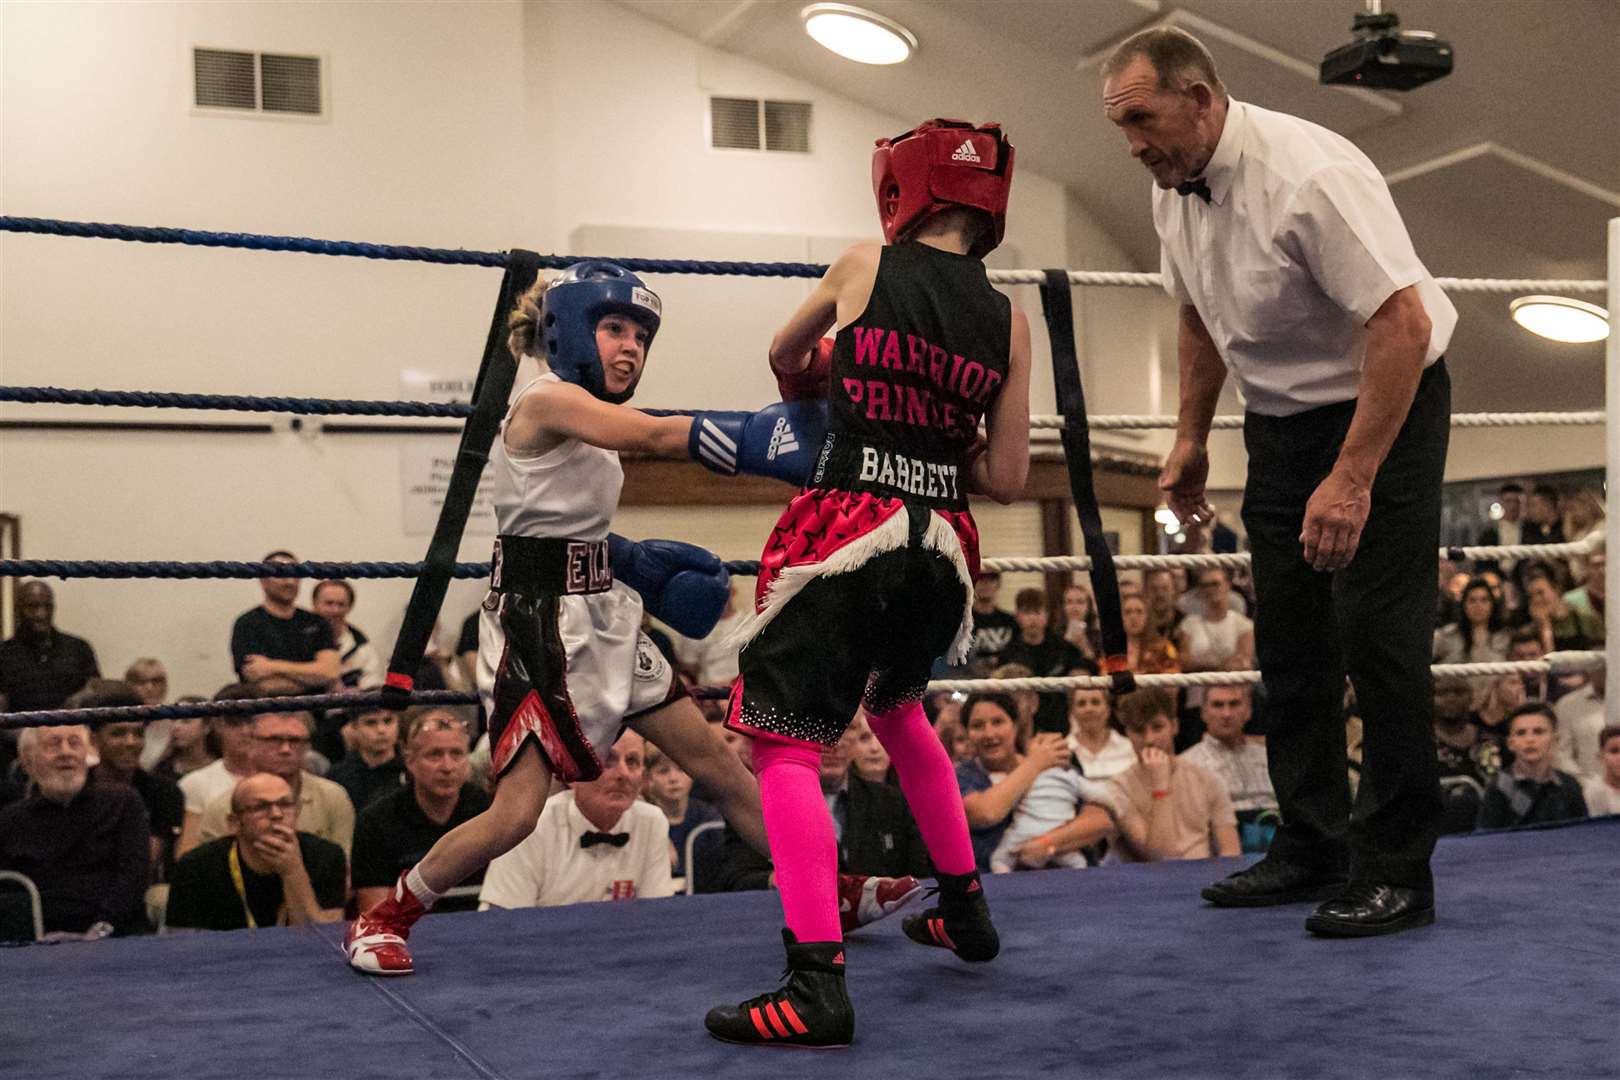 Boxing - Sudbury ABC Home Show. Pictured Ellie Mateer, Bout 8 - (Red) Jordan Barrett (Hooks) v (Sudbury) Ellie Mateer (Blue) Picture - Paul Tebbutt. (4927063)